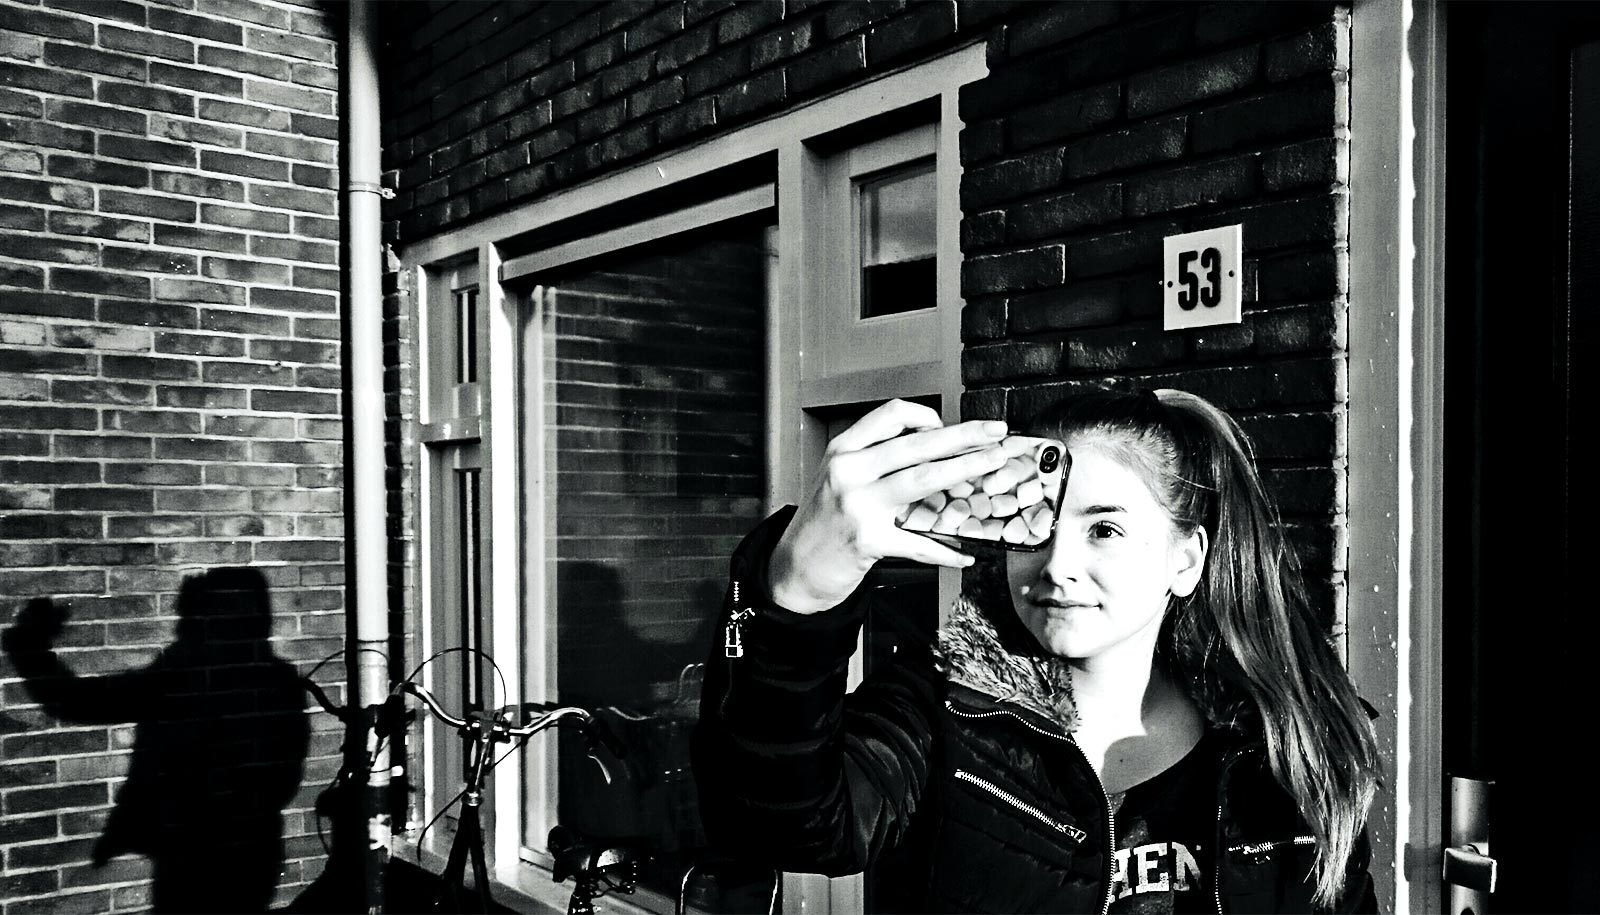 Selfie editing can turn into 'self-objectification' for teen girls - Futurity: Research News